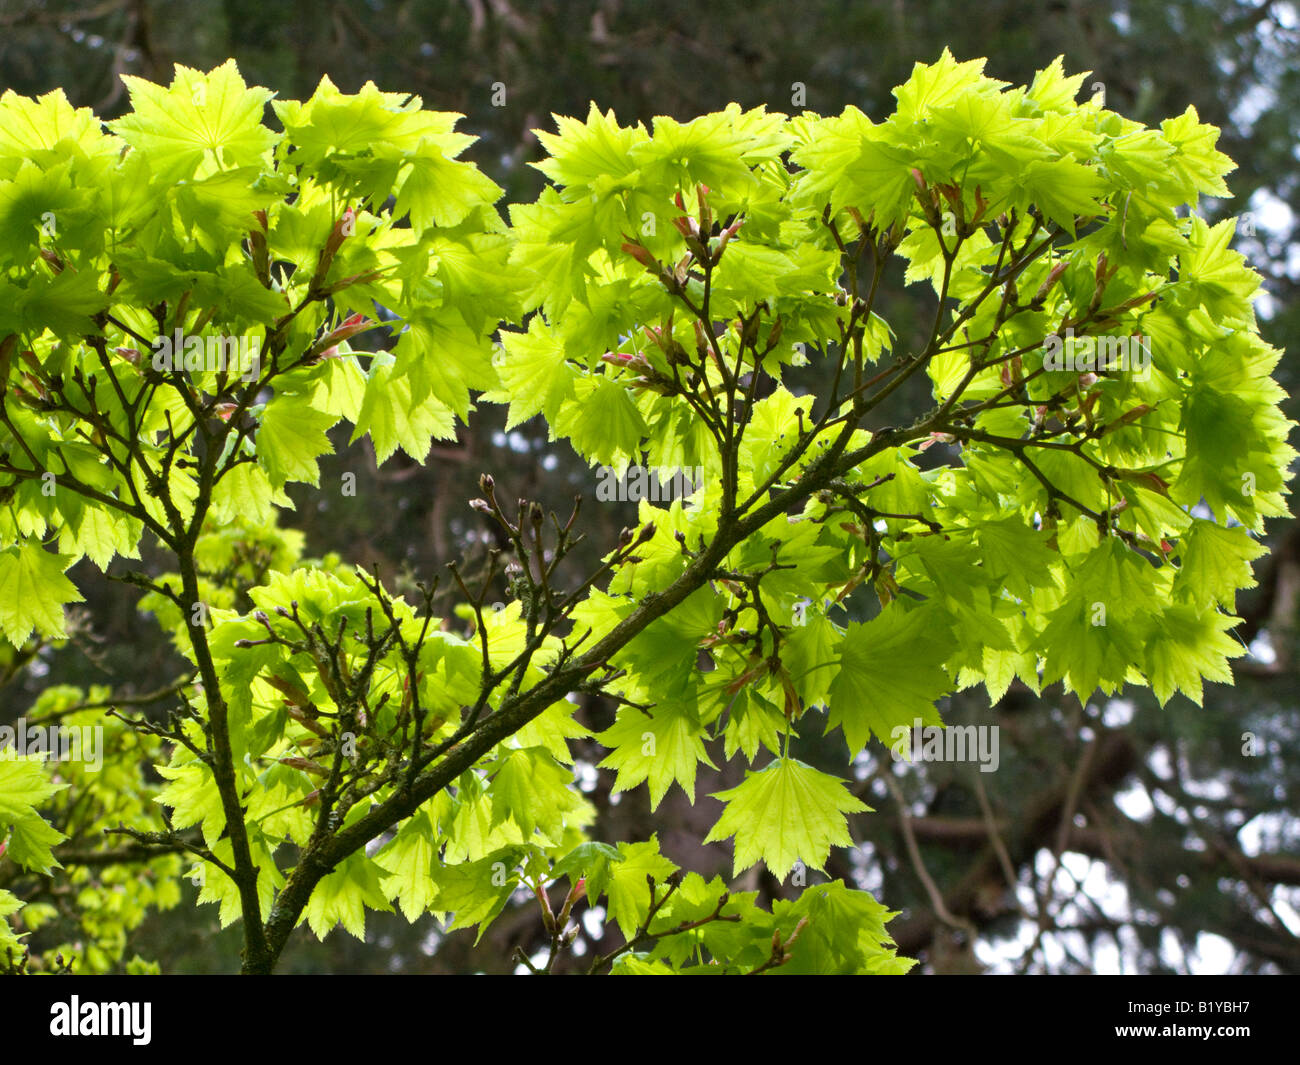 japanese maple acer shirasawanum 39 aureum 39 stock photo royalty free image 18426835 alamy. Black Bedroom Furniture Sets. Home Design Ideas